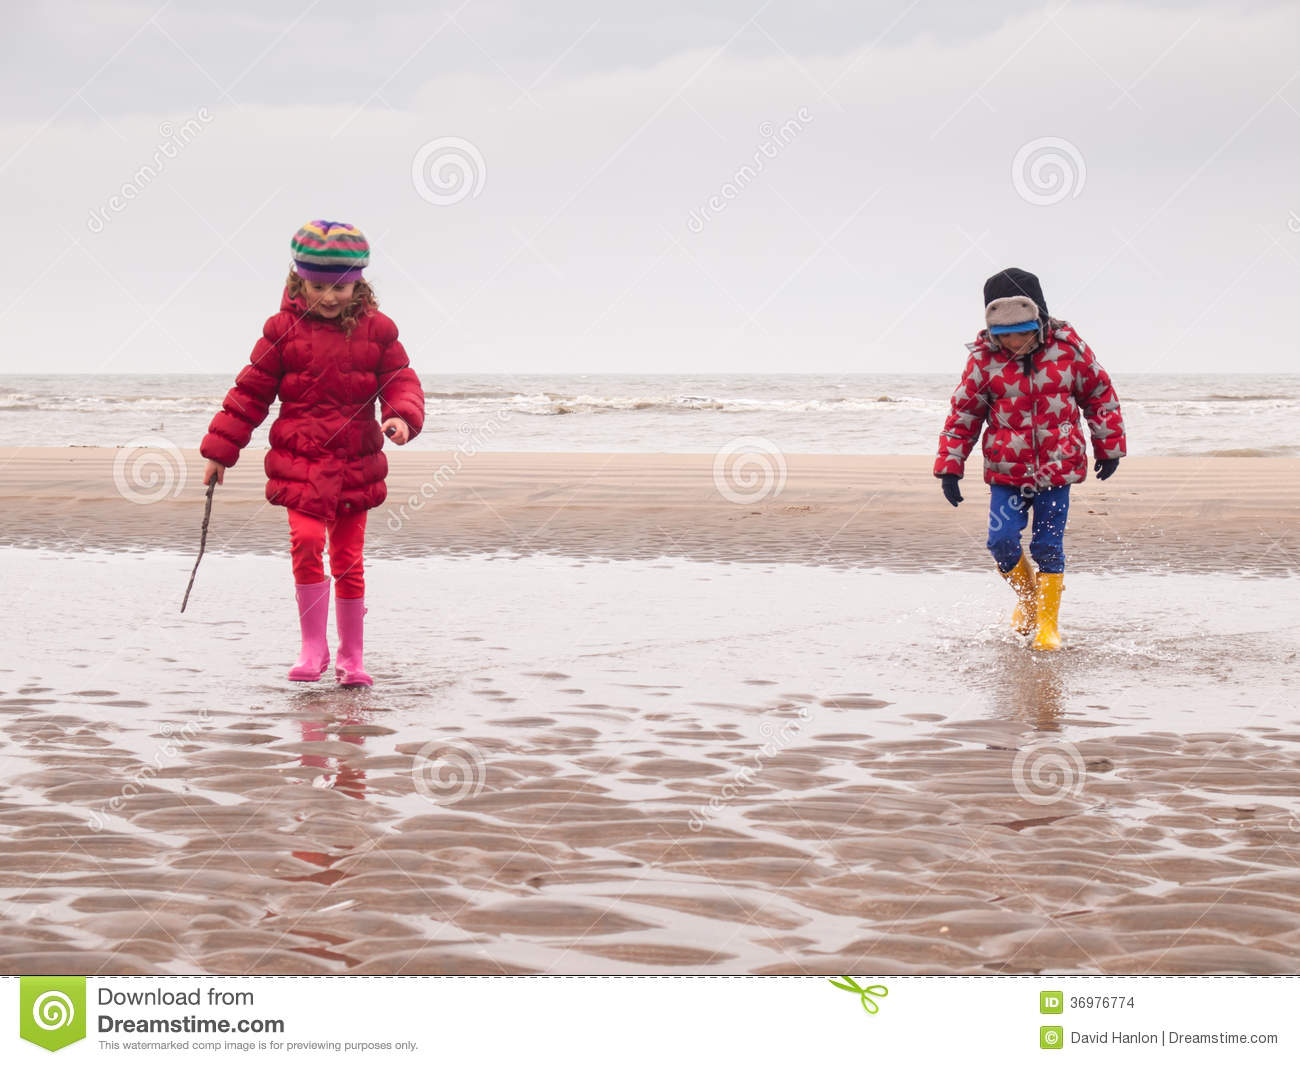 a71a935e31 Small boy and girl in winter clothing and rubber boots spalshing in a tidal  pool on a winter beach